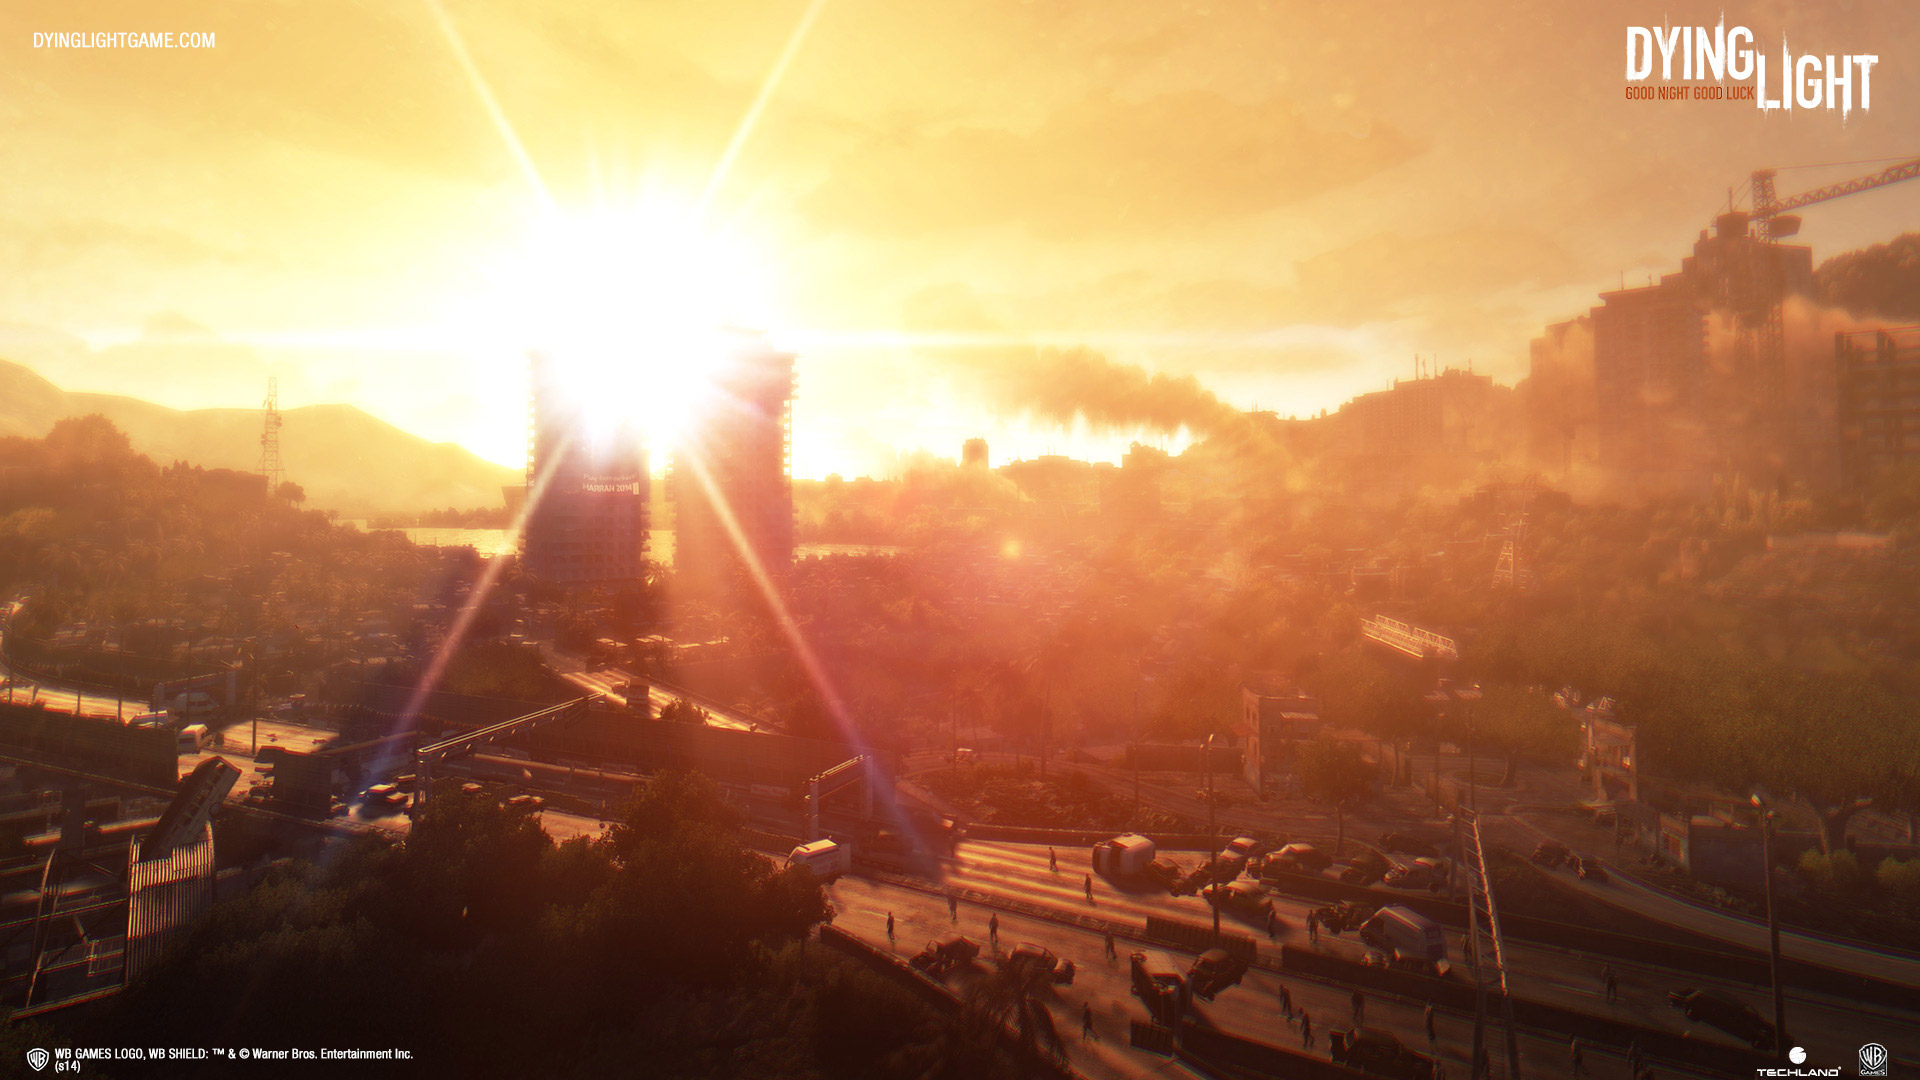 dying light hd wallpaper background image 1920x1080